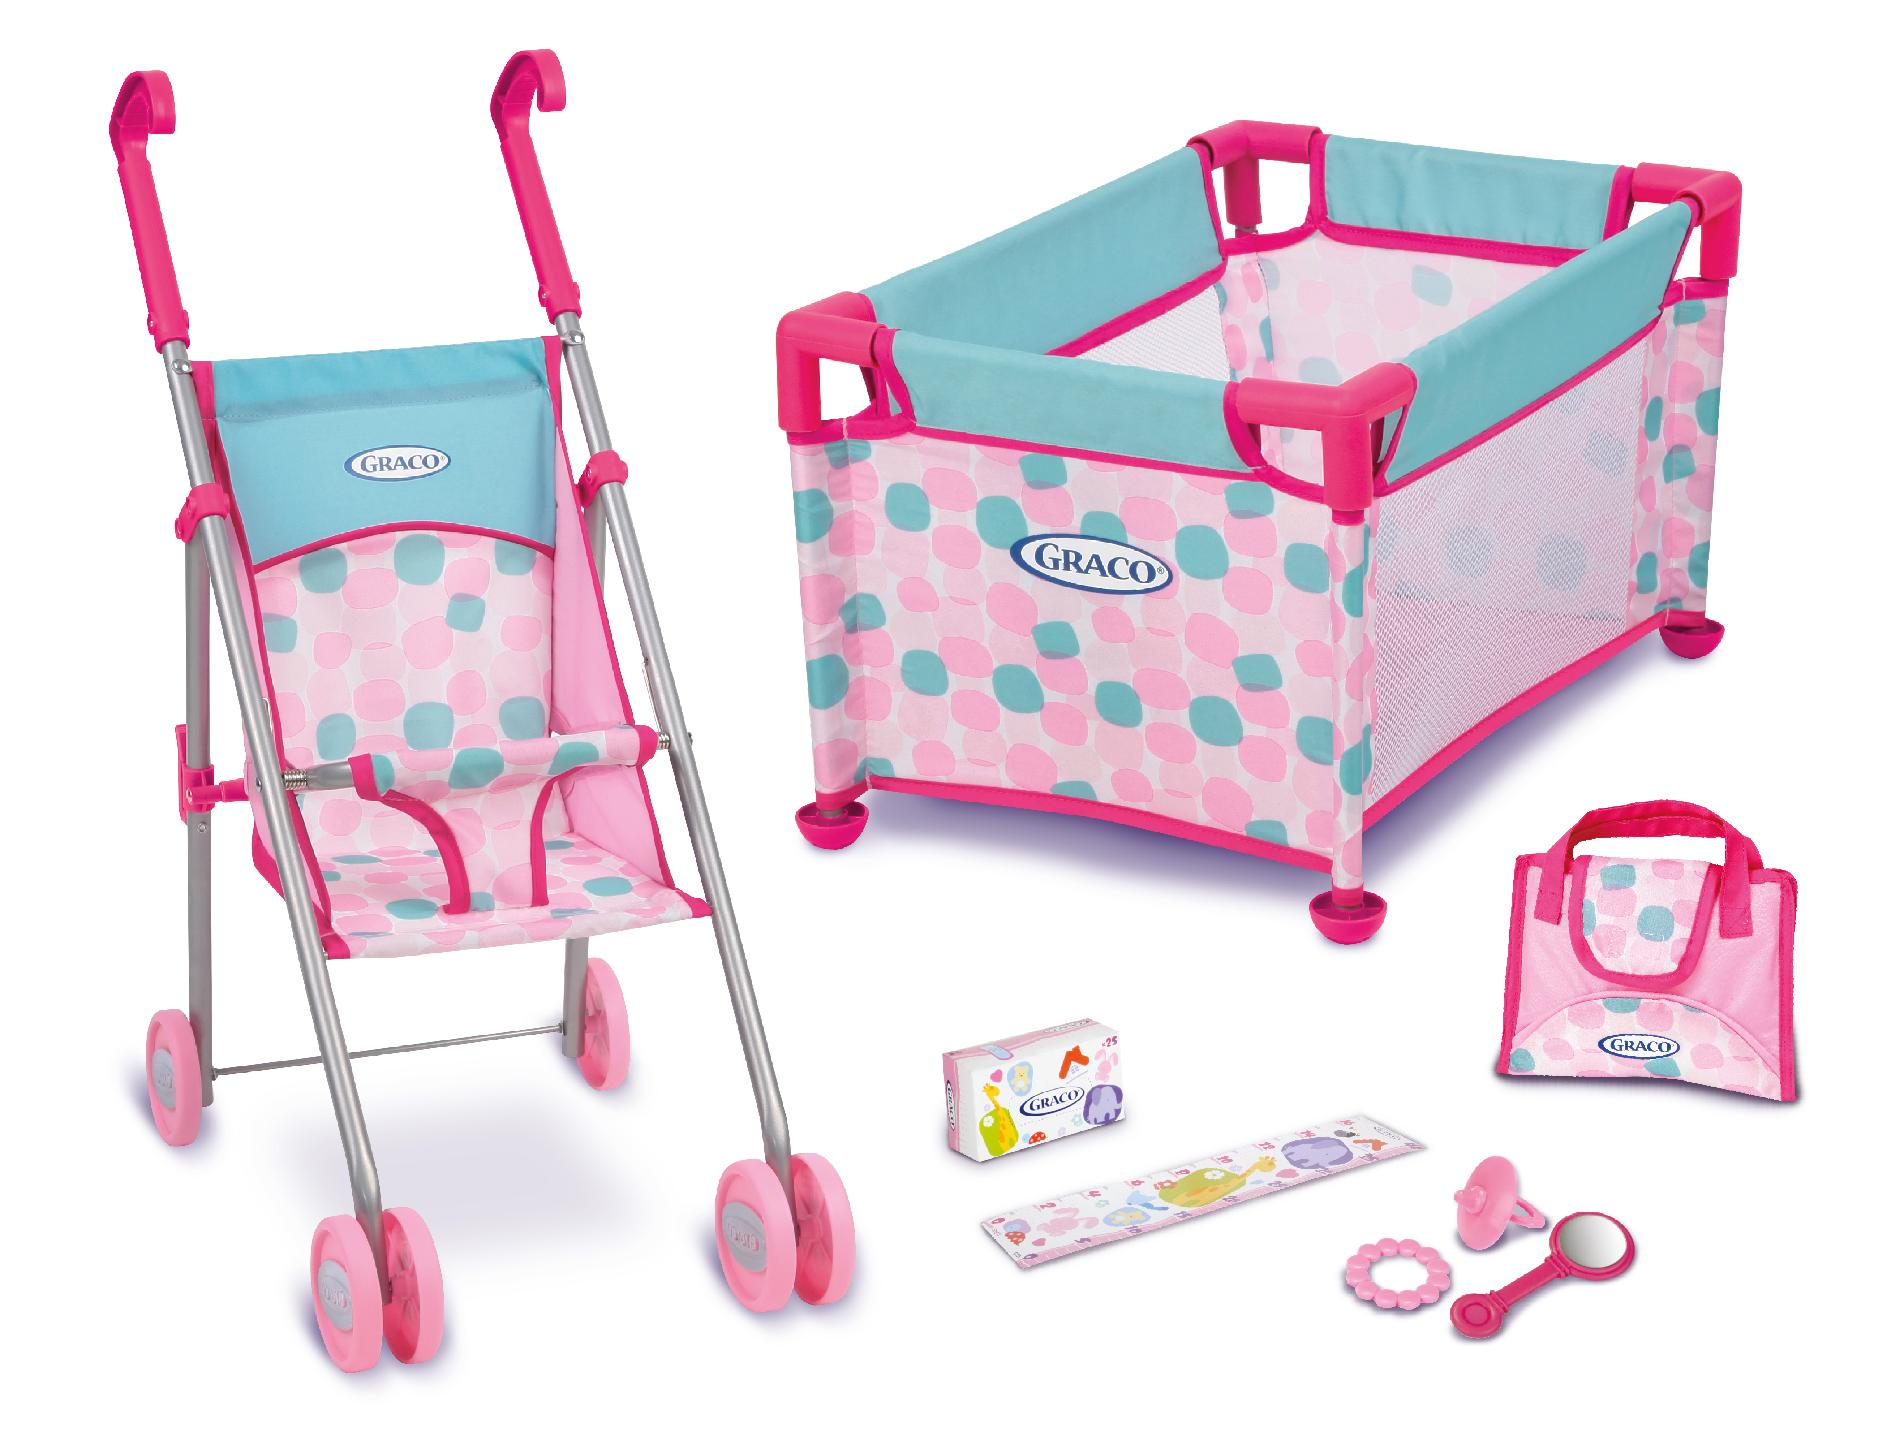 Baby Prams Target Graco Doll Playset Taking Care Of The Babies In Style At